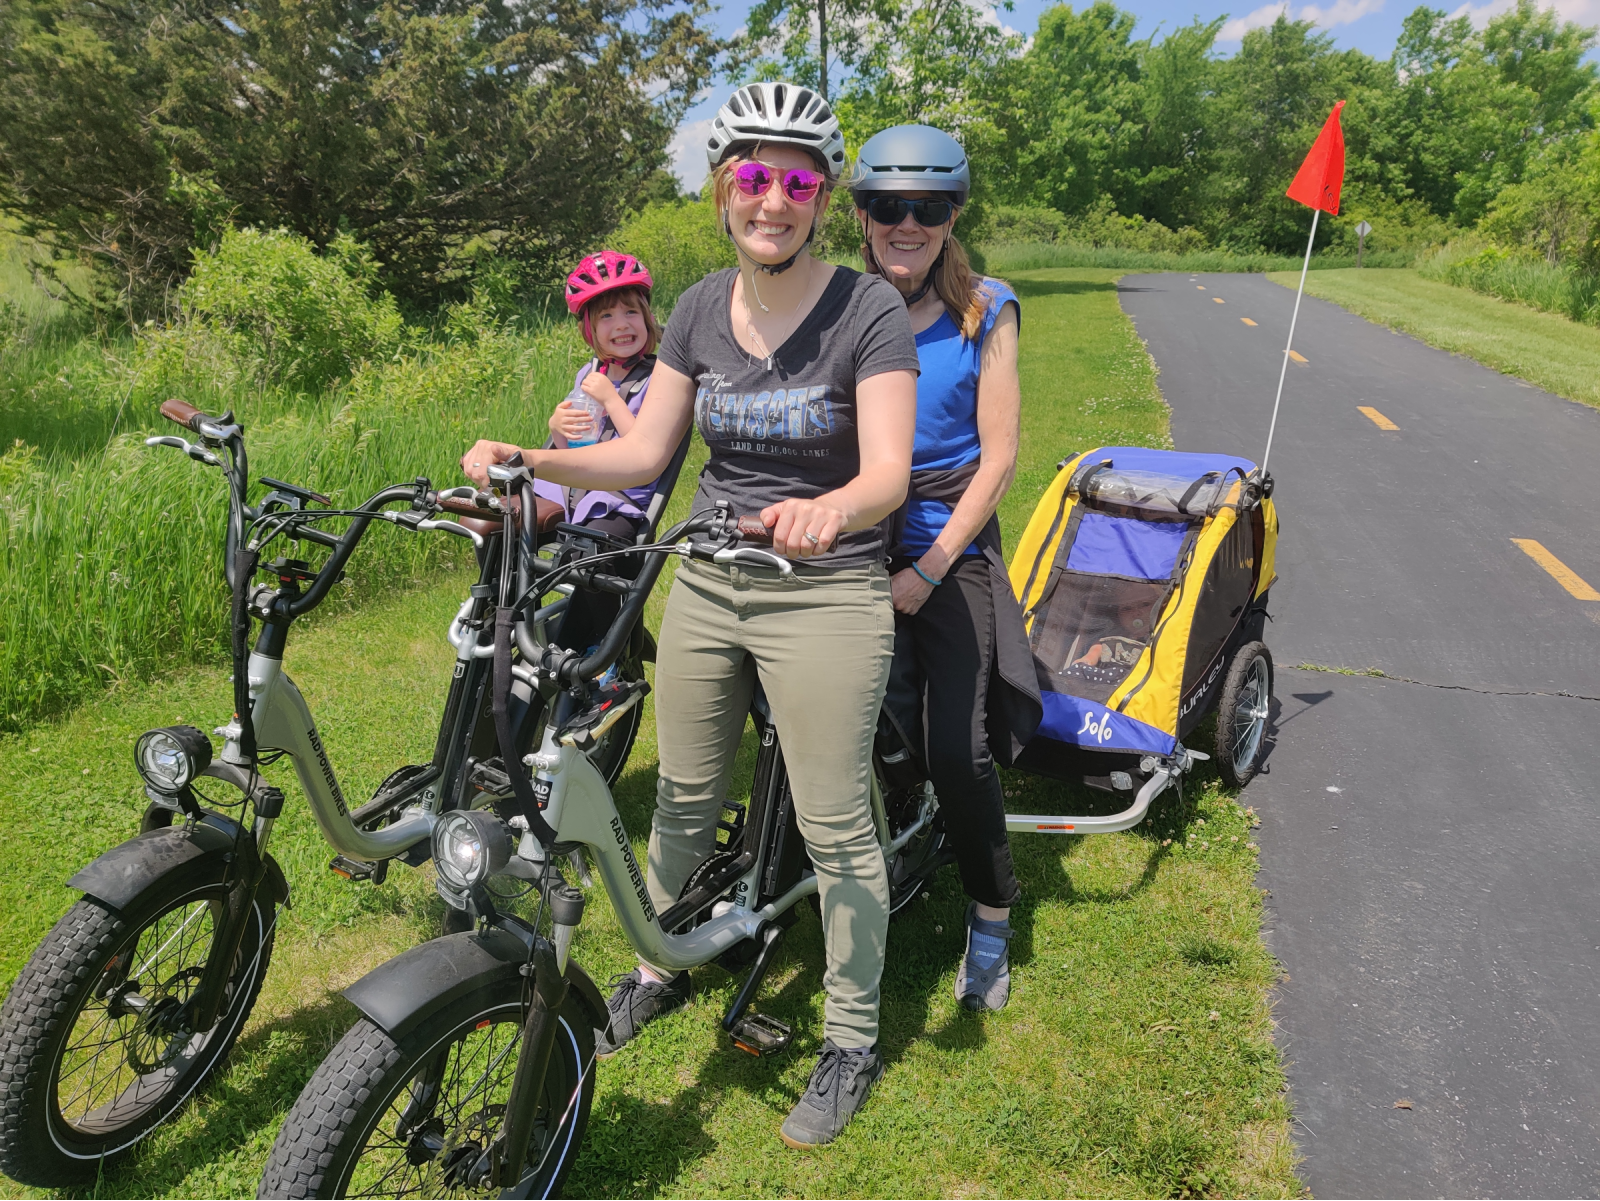 Leana with her daughter and mother on e-bikes.